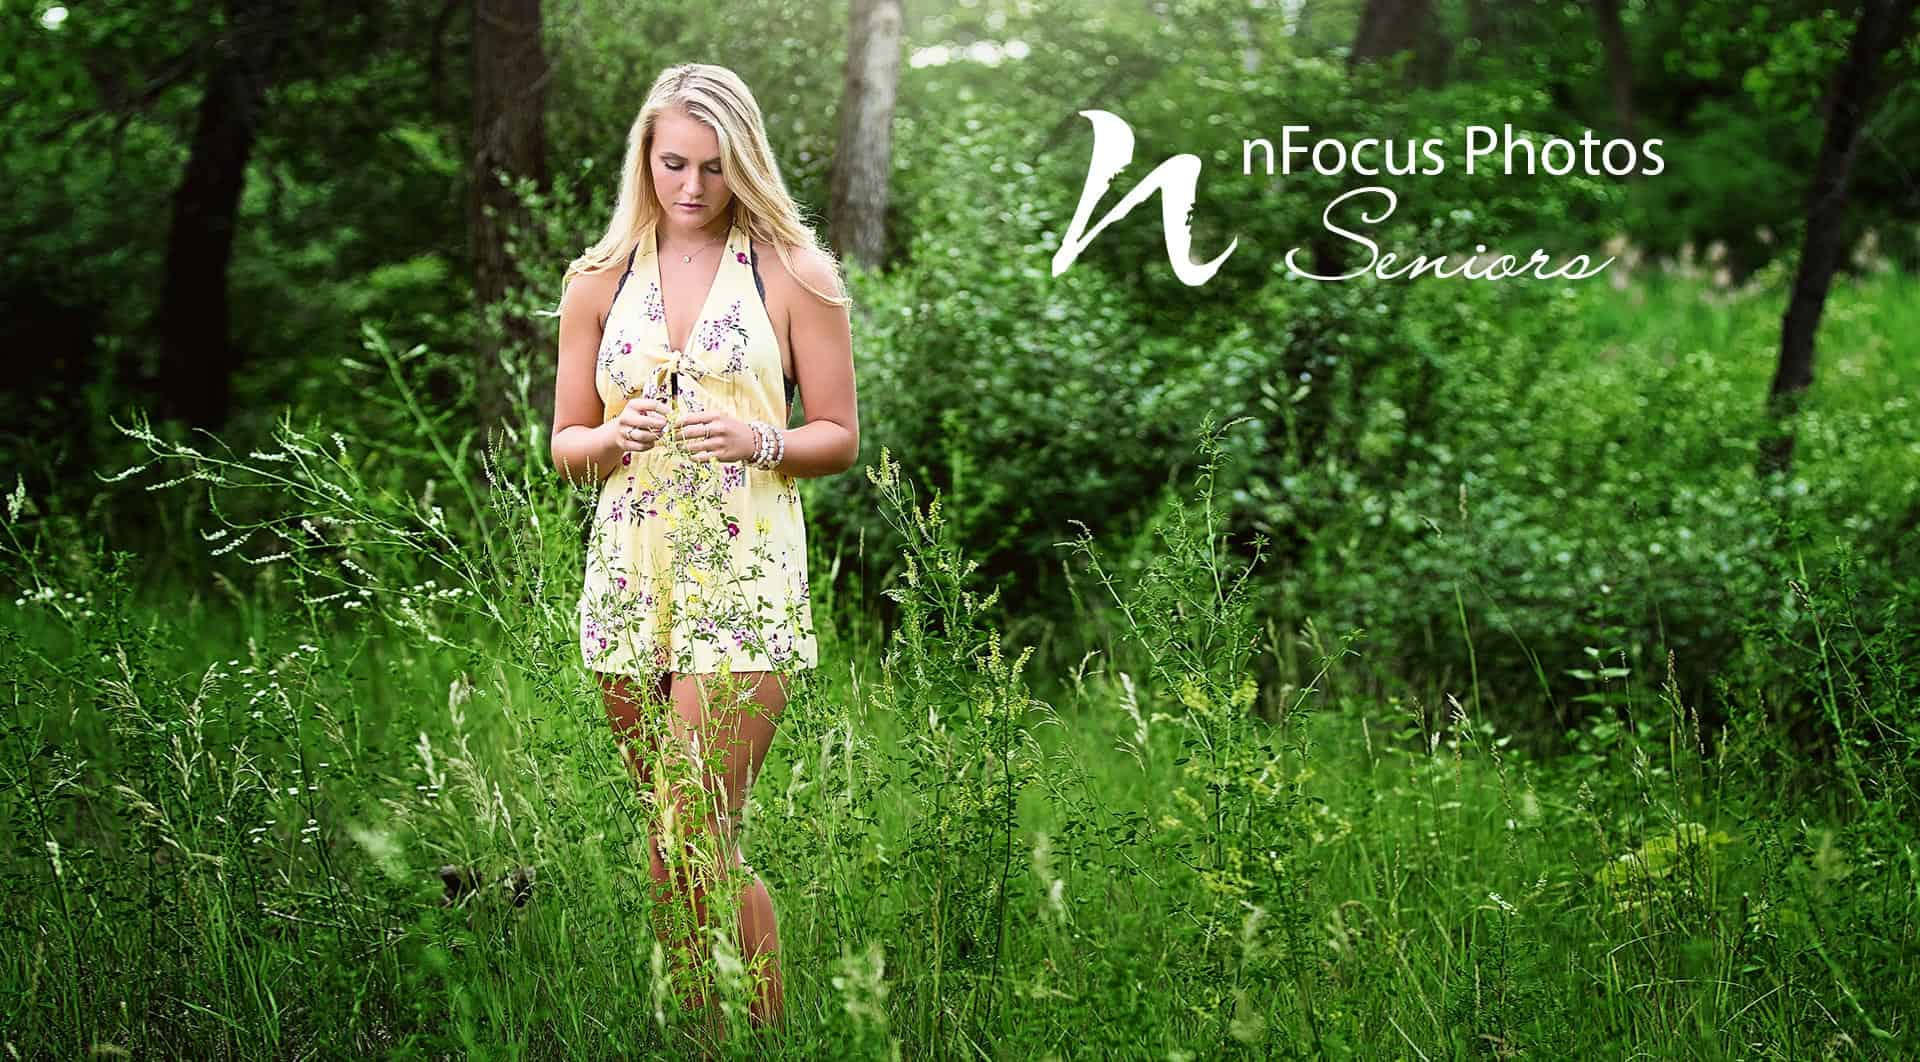 nfocus photos - senior photos in Crystal Lake, IL